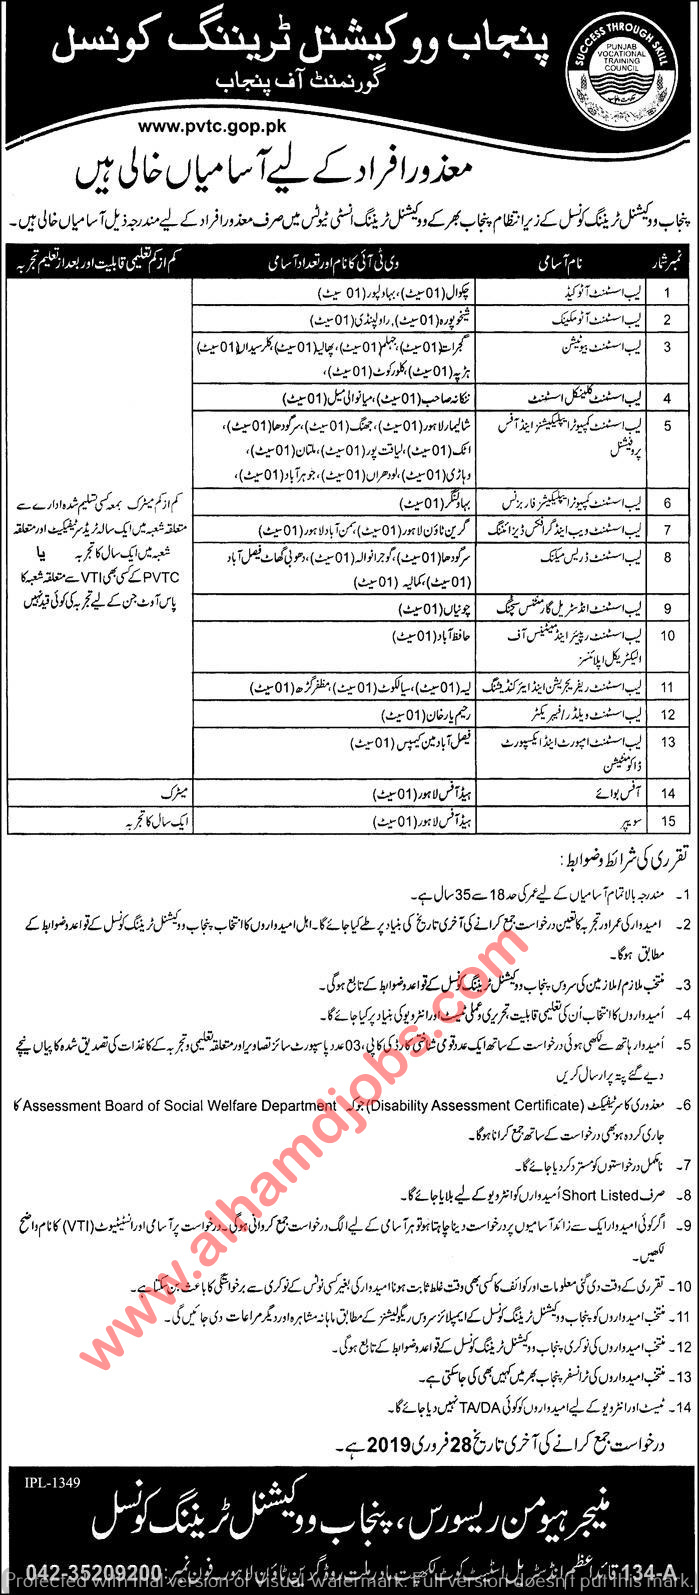 Jobs in Punjab Vocational Training Council for disabled